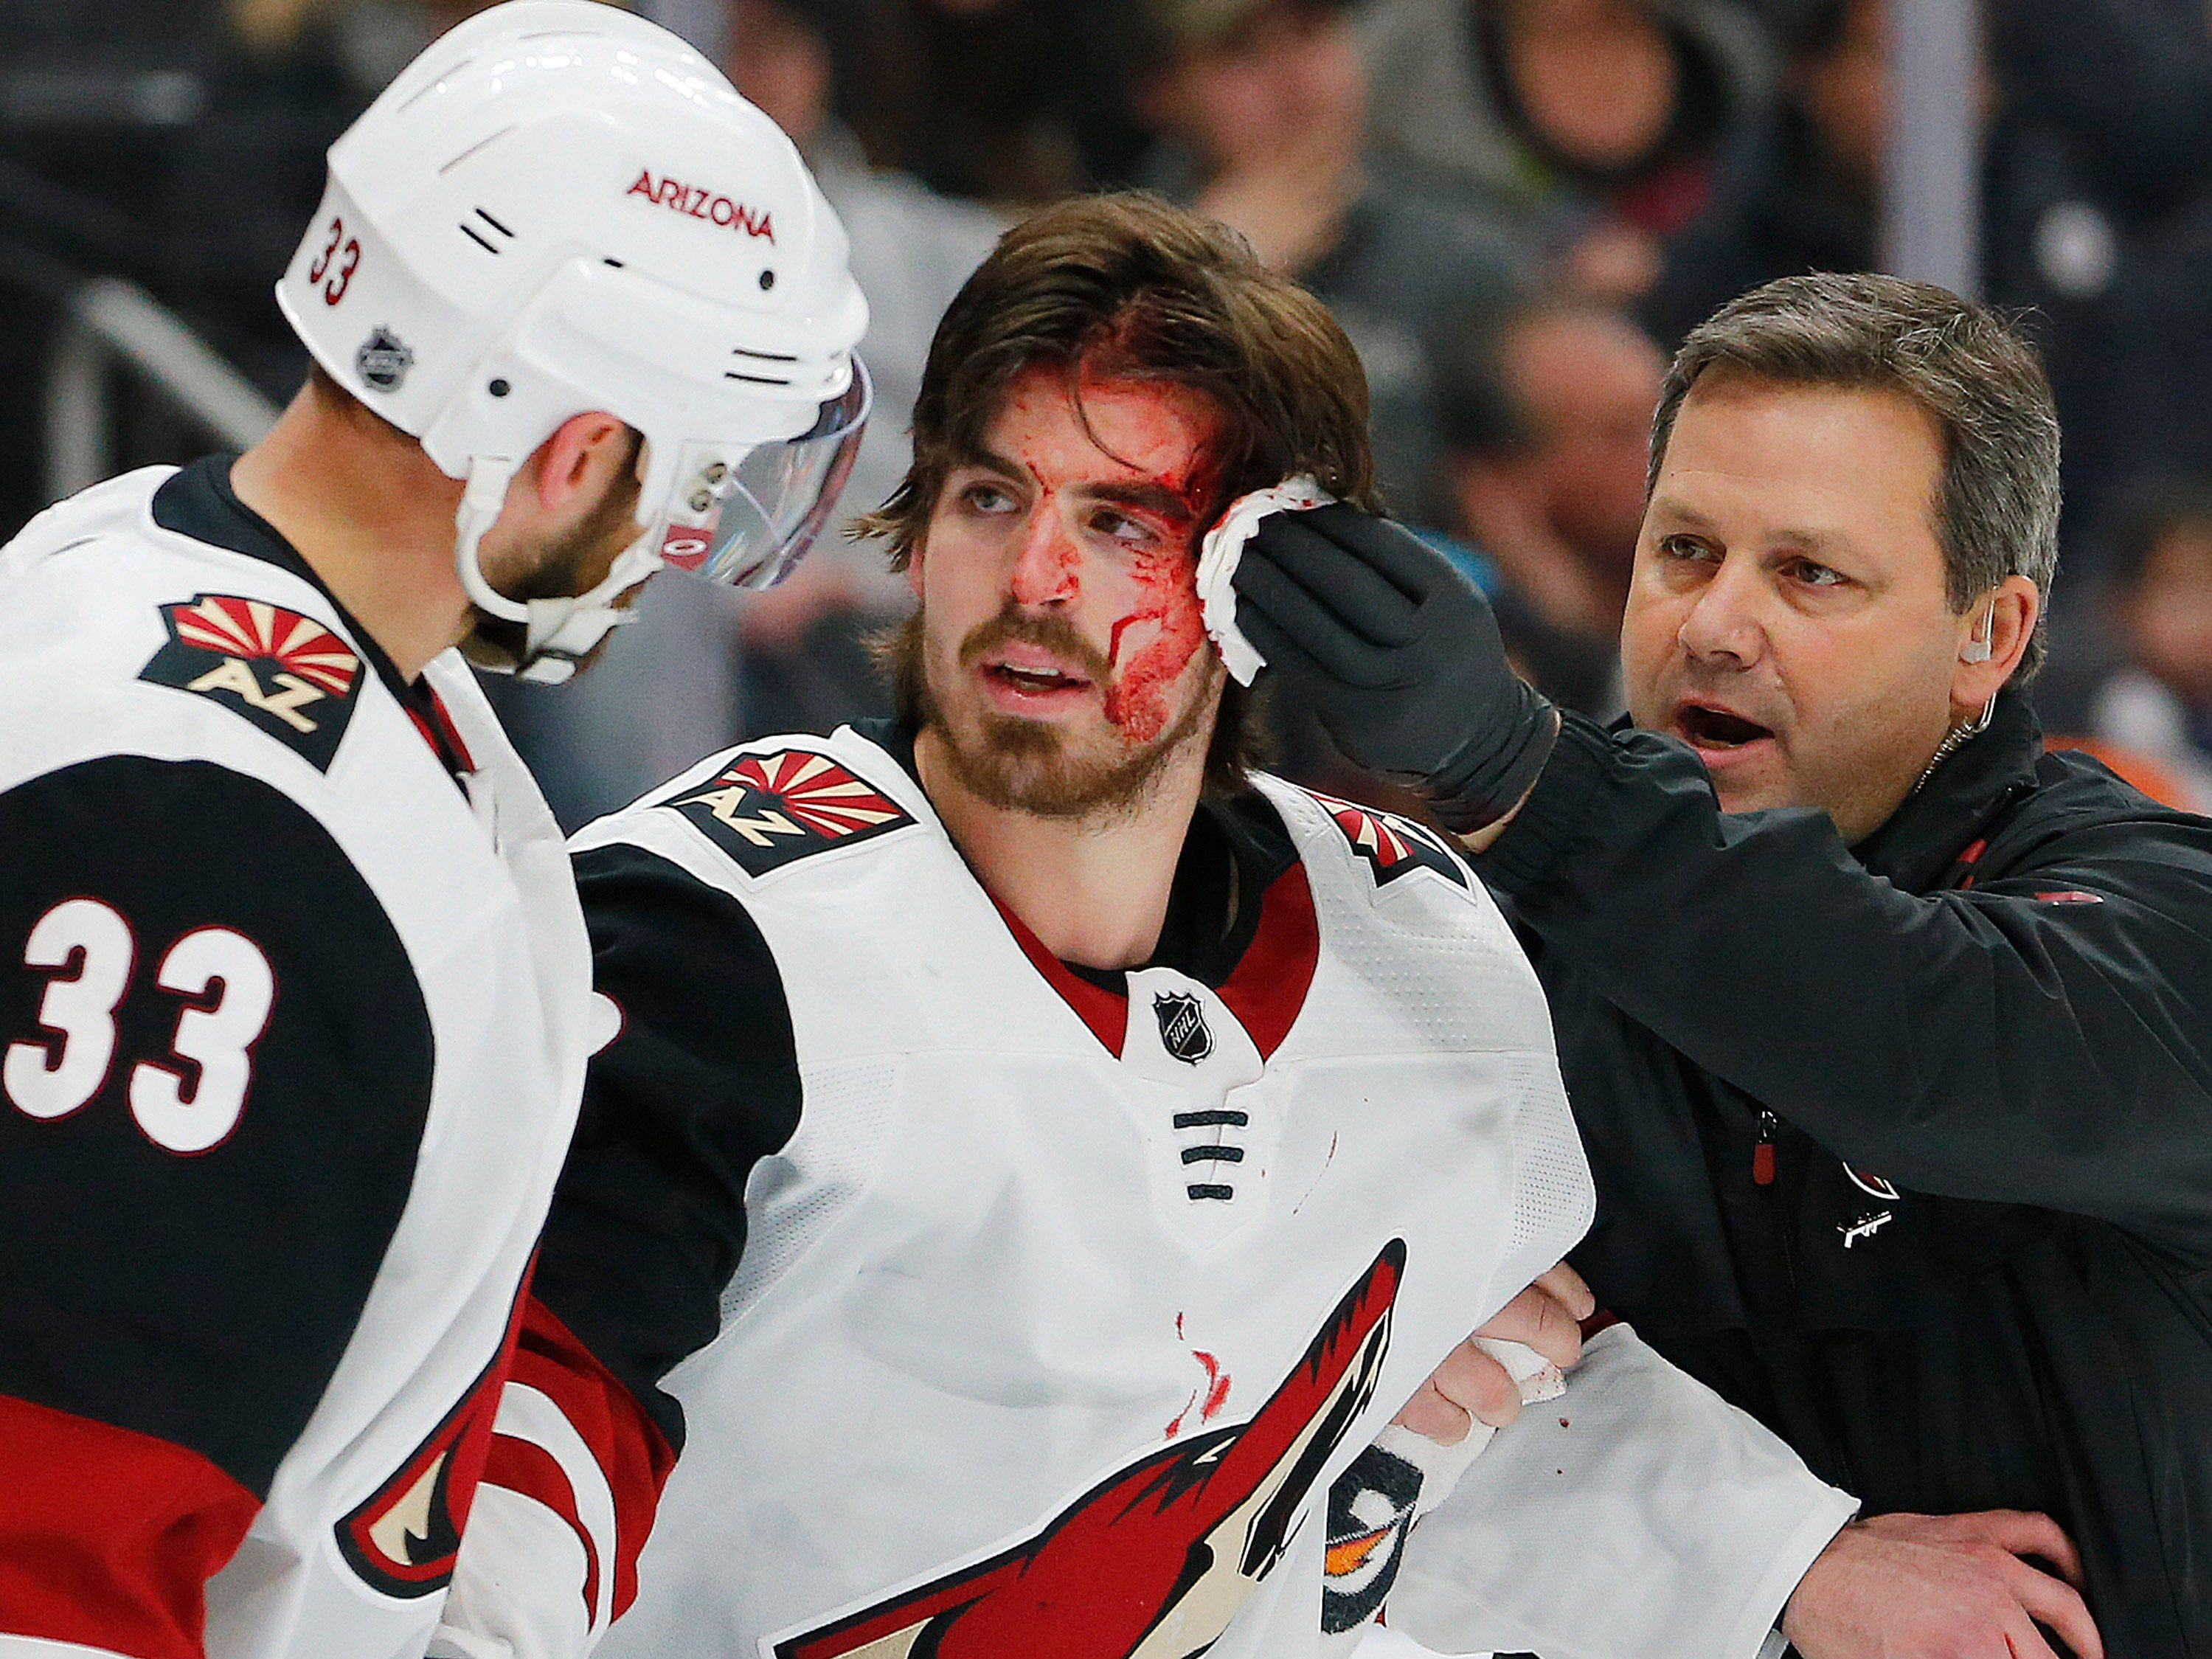 (Editor's Note: Graphic Content) Jan 12, 2019; Edmonton, Alberta, CAN; Arizona Coyotes trainer looks after forward Conor Garland (83) who was cut by a shot that deflected off his face and into the Edmonton Oilers net for a goal during the second period. (Perry Nelson-USA TODAY Sports)